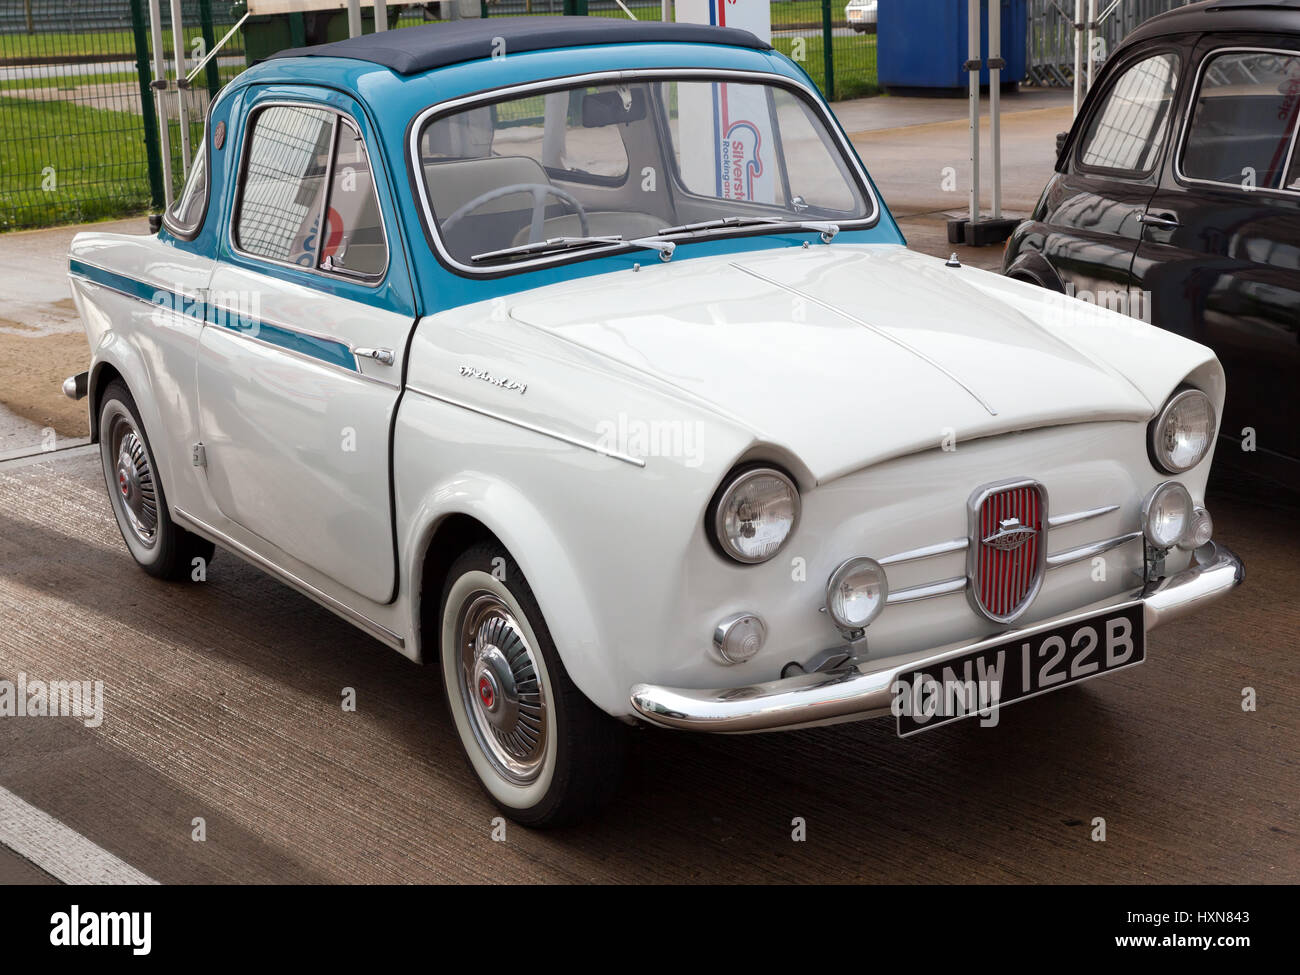 Three-quarter view of a NSU/Fiat Weinsberg 500, on display at the Silverstone Classic Media Day. - Stock Image